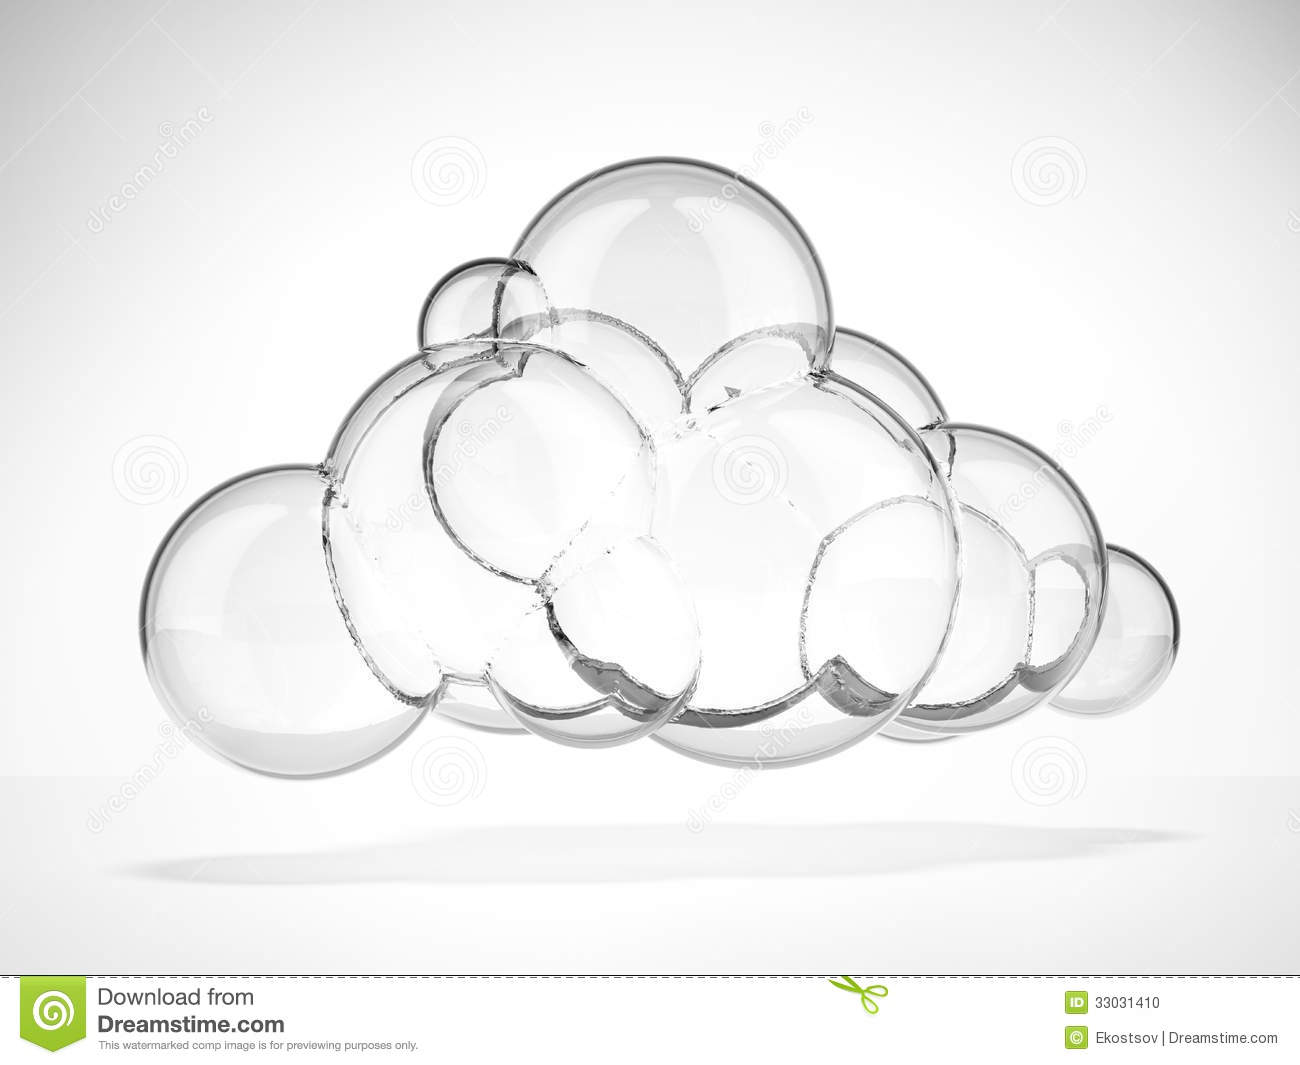 Glass cloud free mp3 download descargar